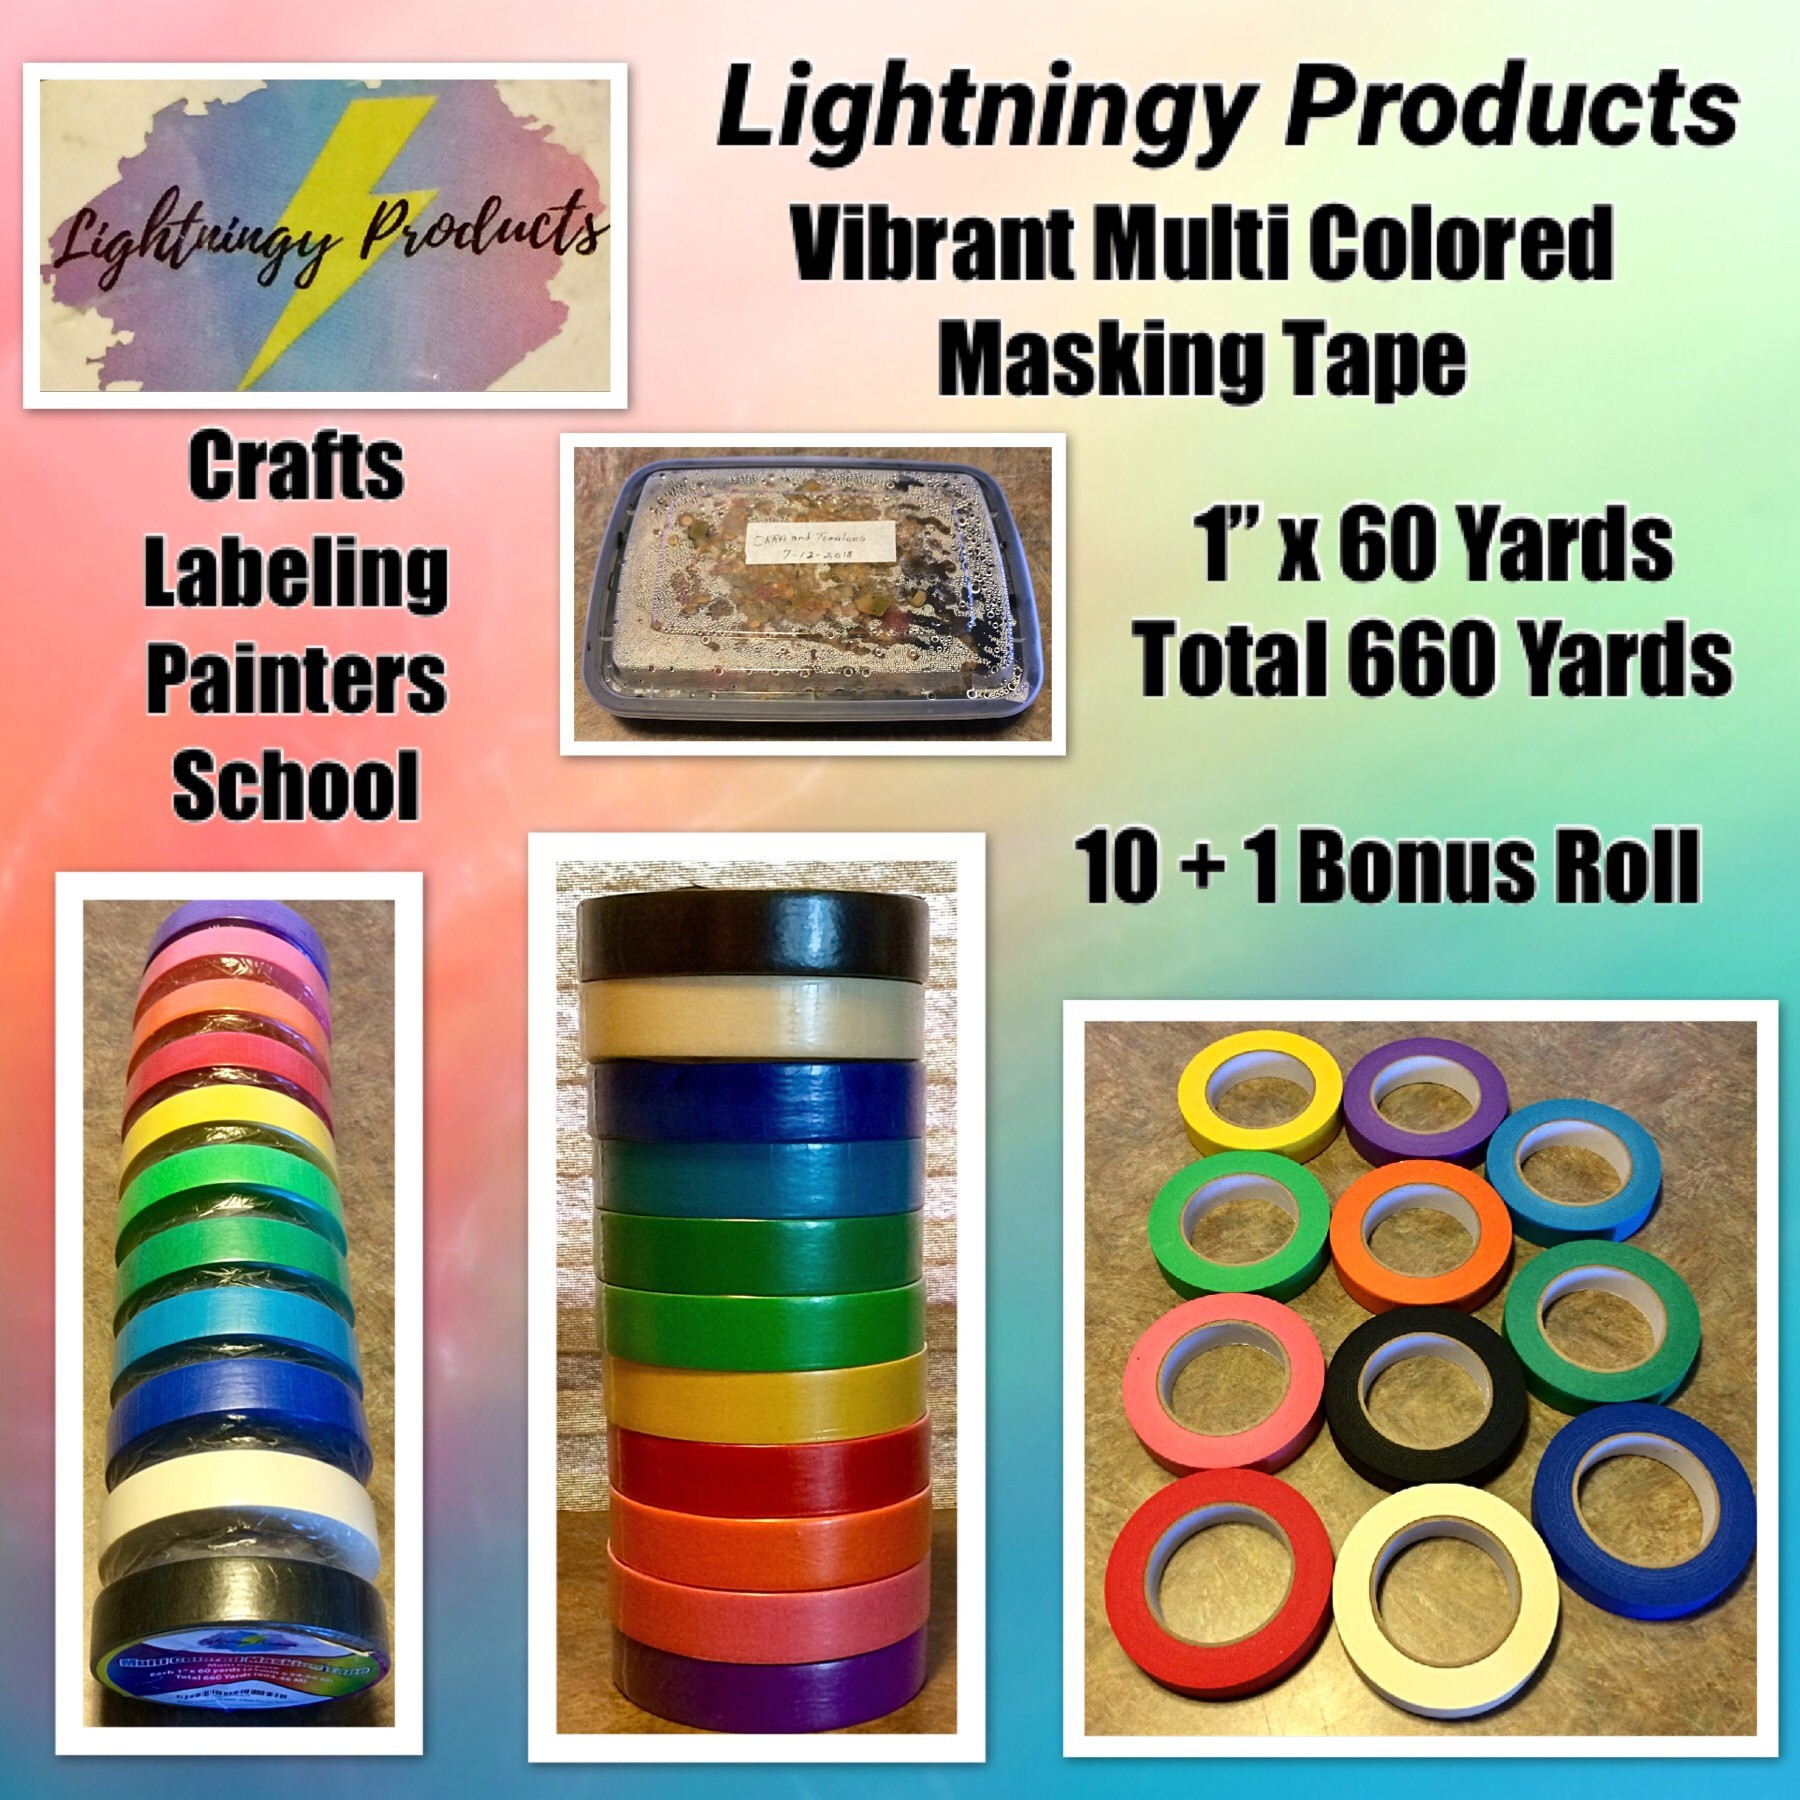 Lightningy Products - Vibrant Multi Colored Masking Tape - 10 Rolls Plus One Bonus Roll